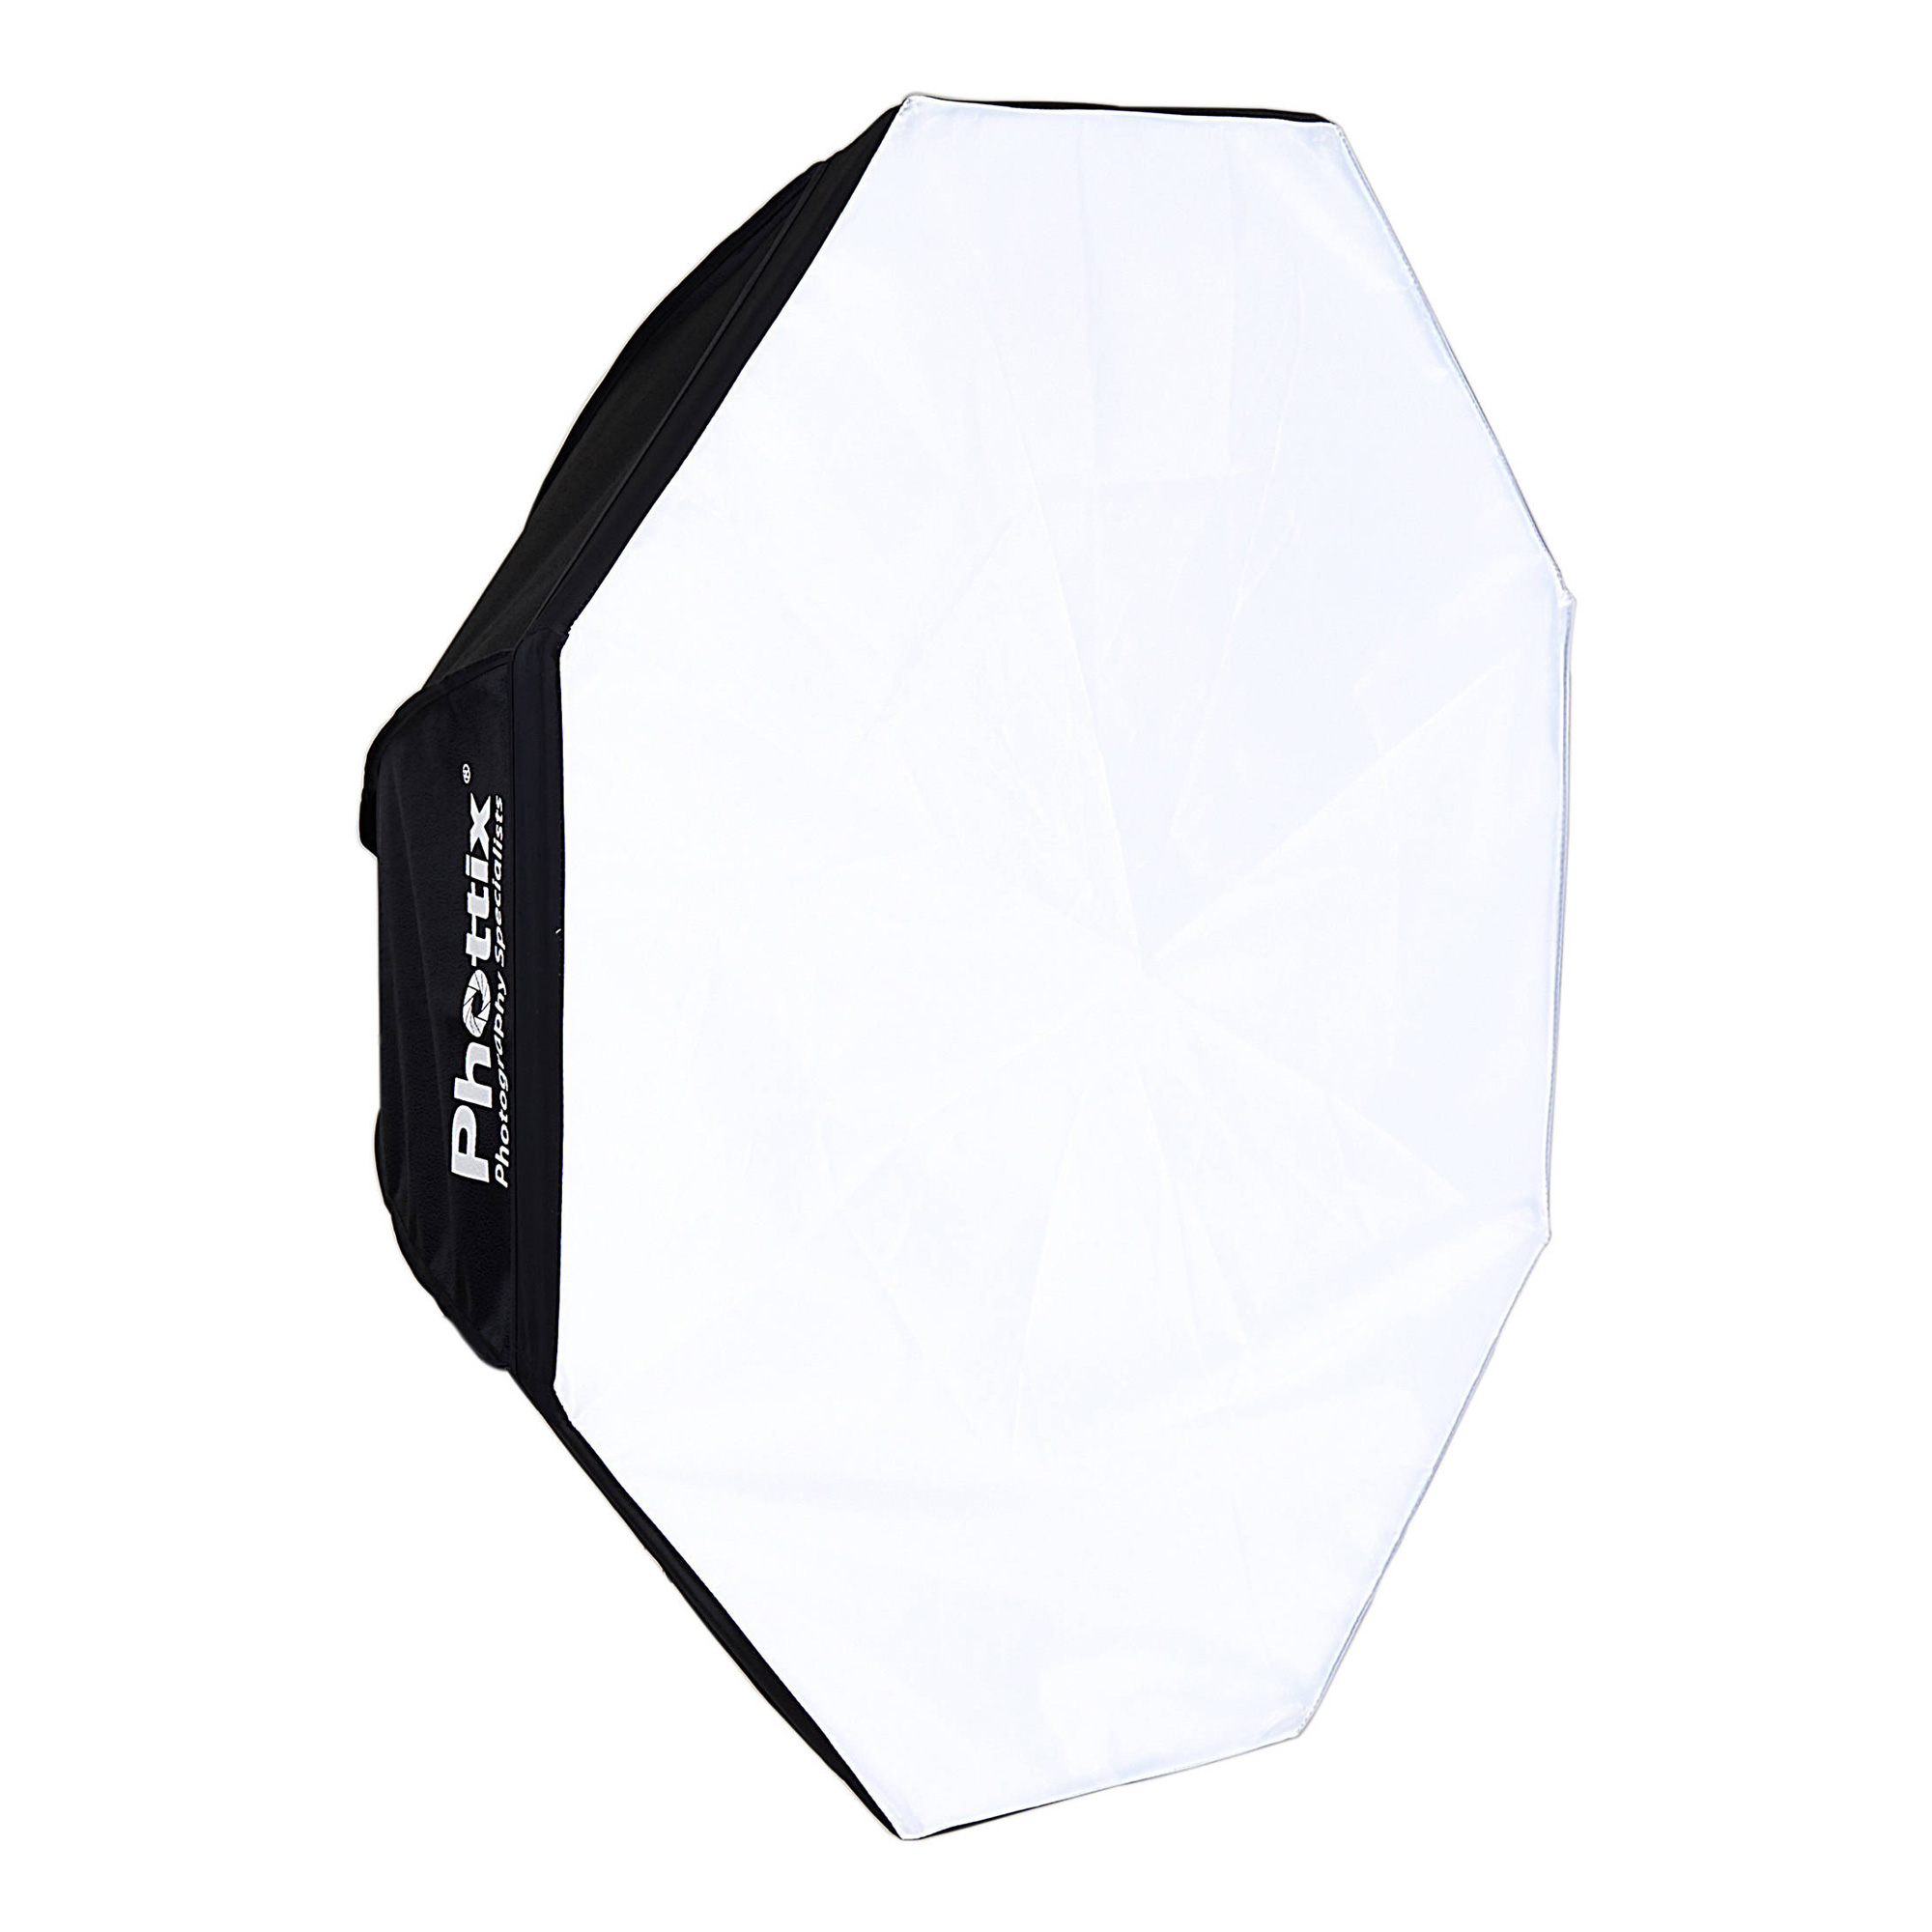 37 In. Octagon Softbox